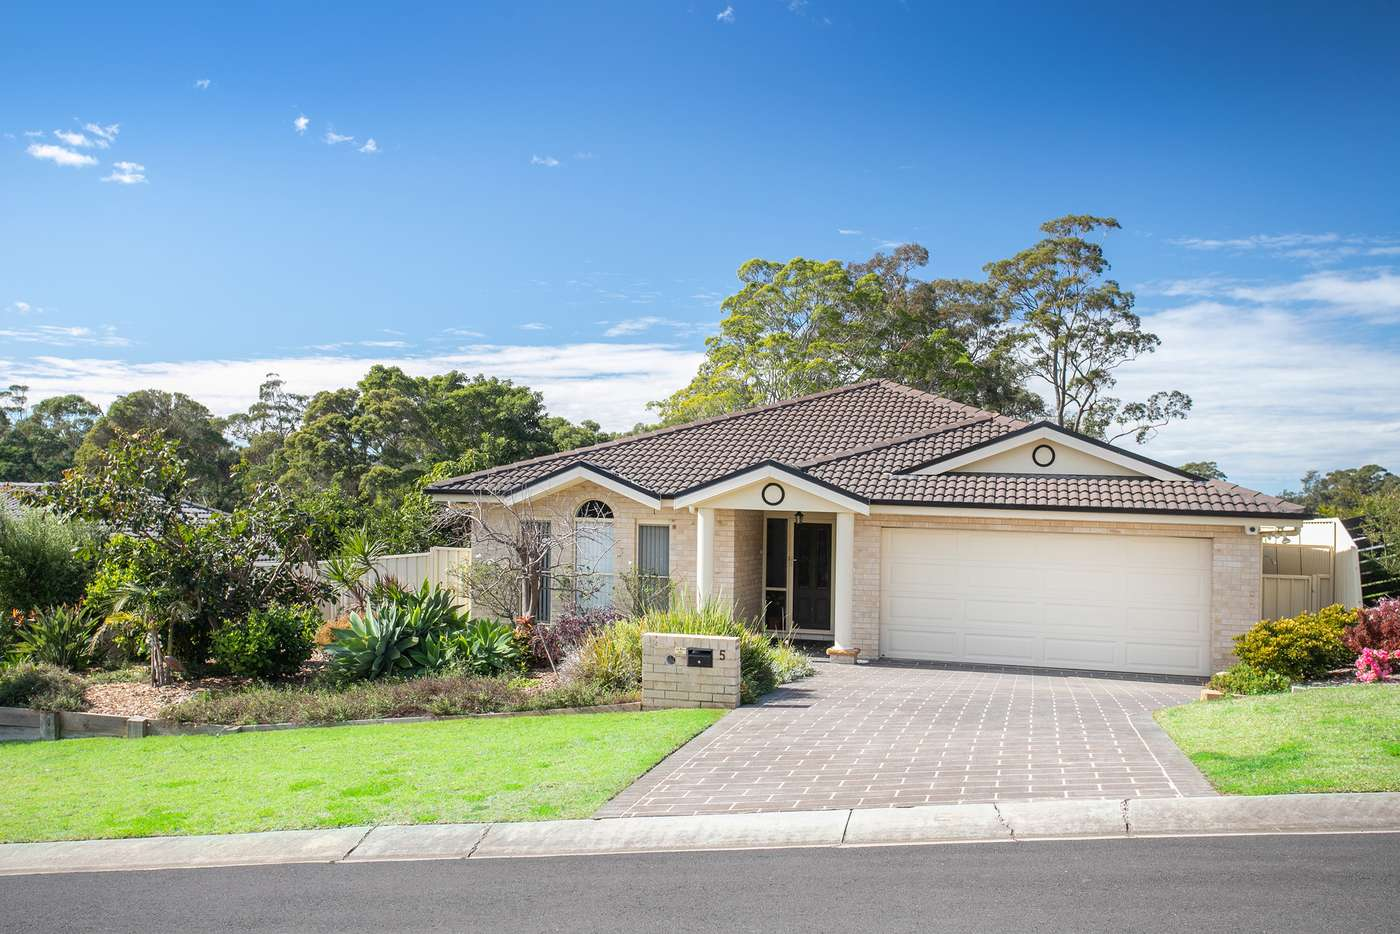 Main view of Homely house listing, 5 The Meadows, Mollymook NSW 2539